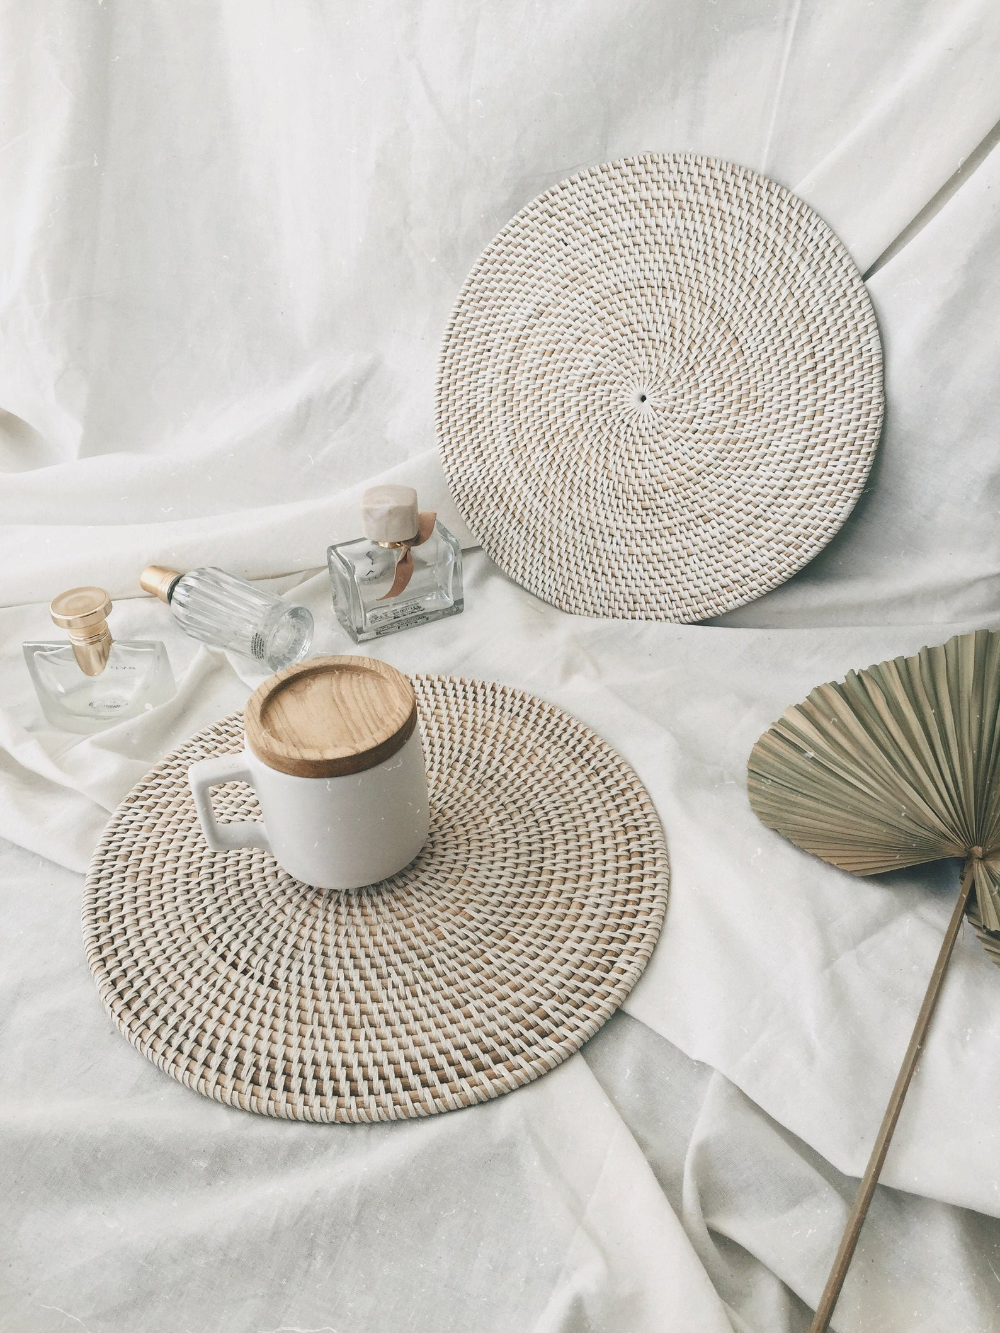 Round White Rattan Placemats White Color Placemats Dining Etsy In 2021 Bali Decor Wicker Placemats White Placemats